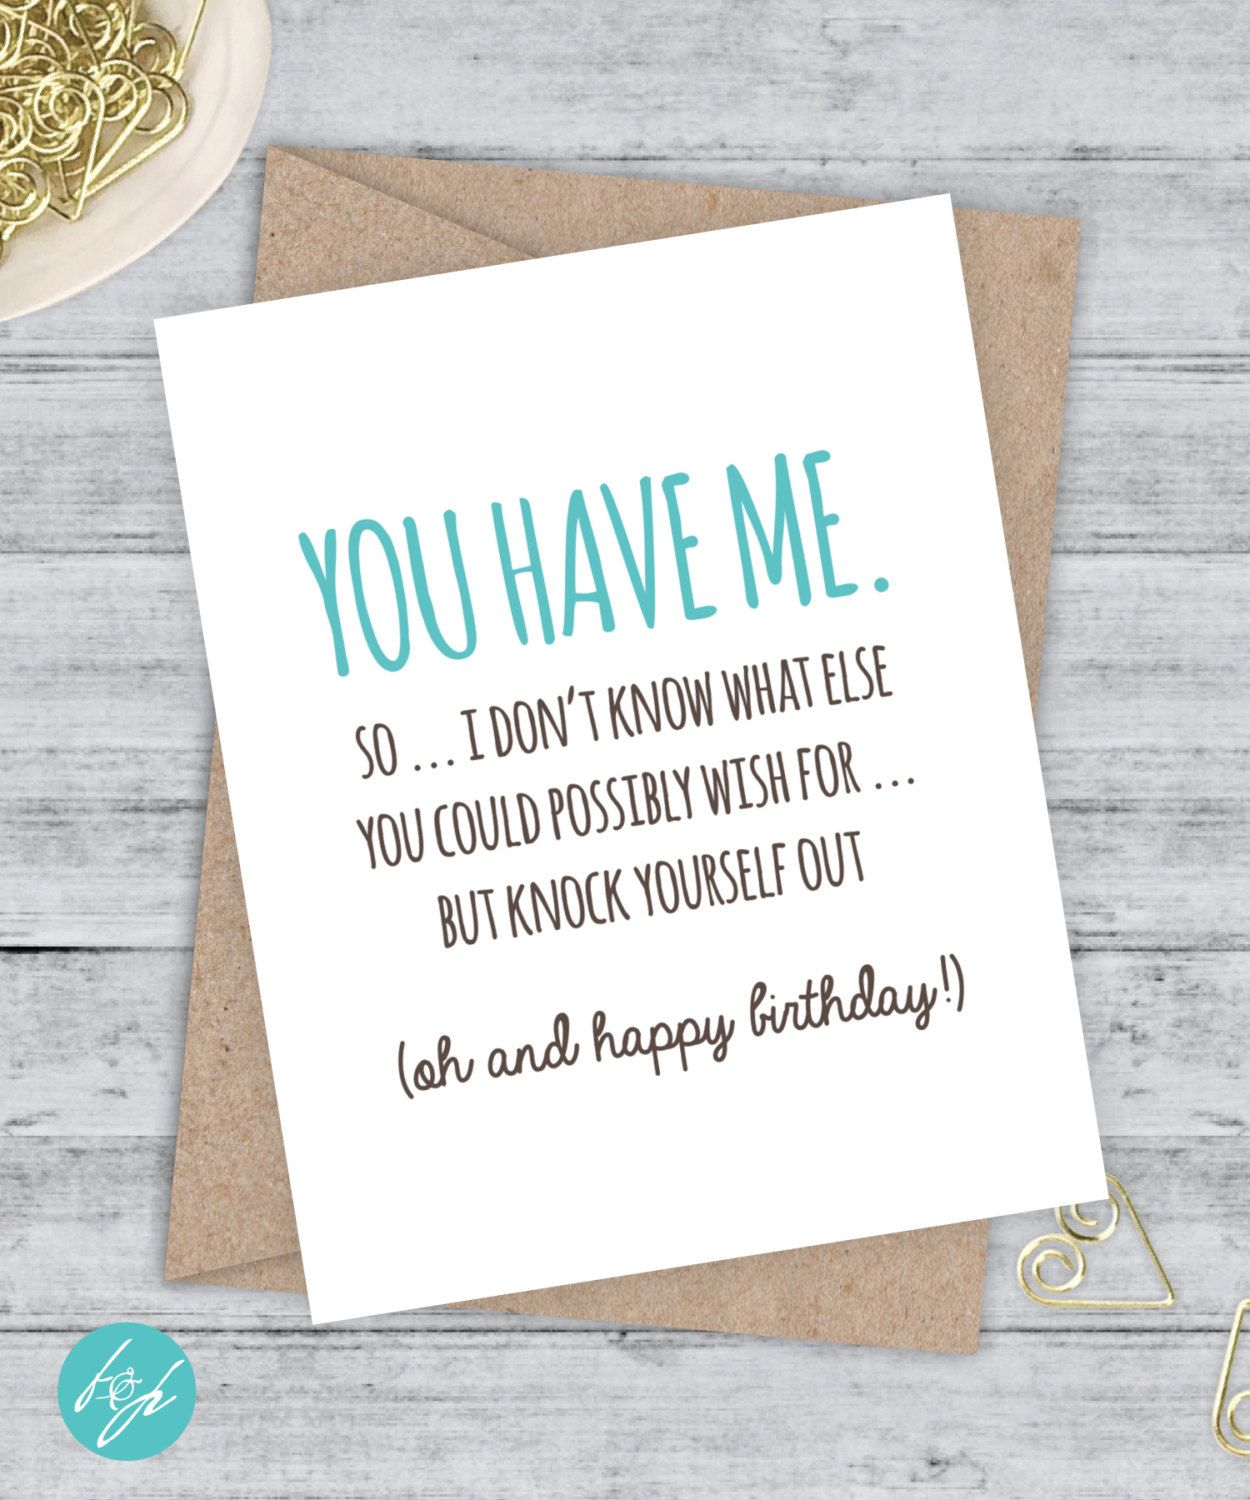 Boyfriend birthday birthday card funny boyfriend card birthday card funny boyfriend card funny by flairandpaper bookmarktalkfo